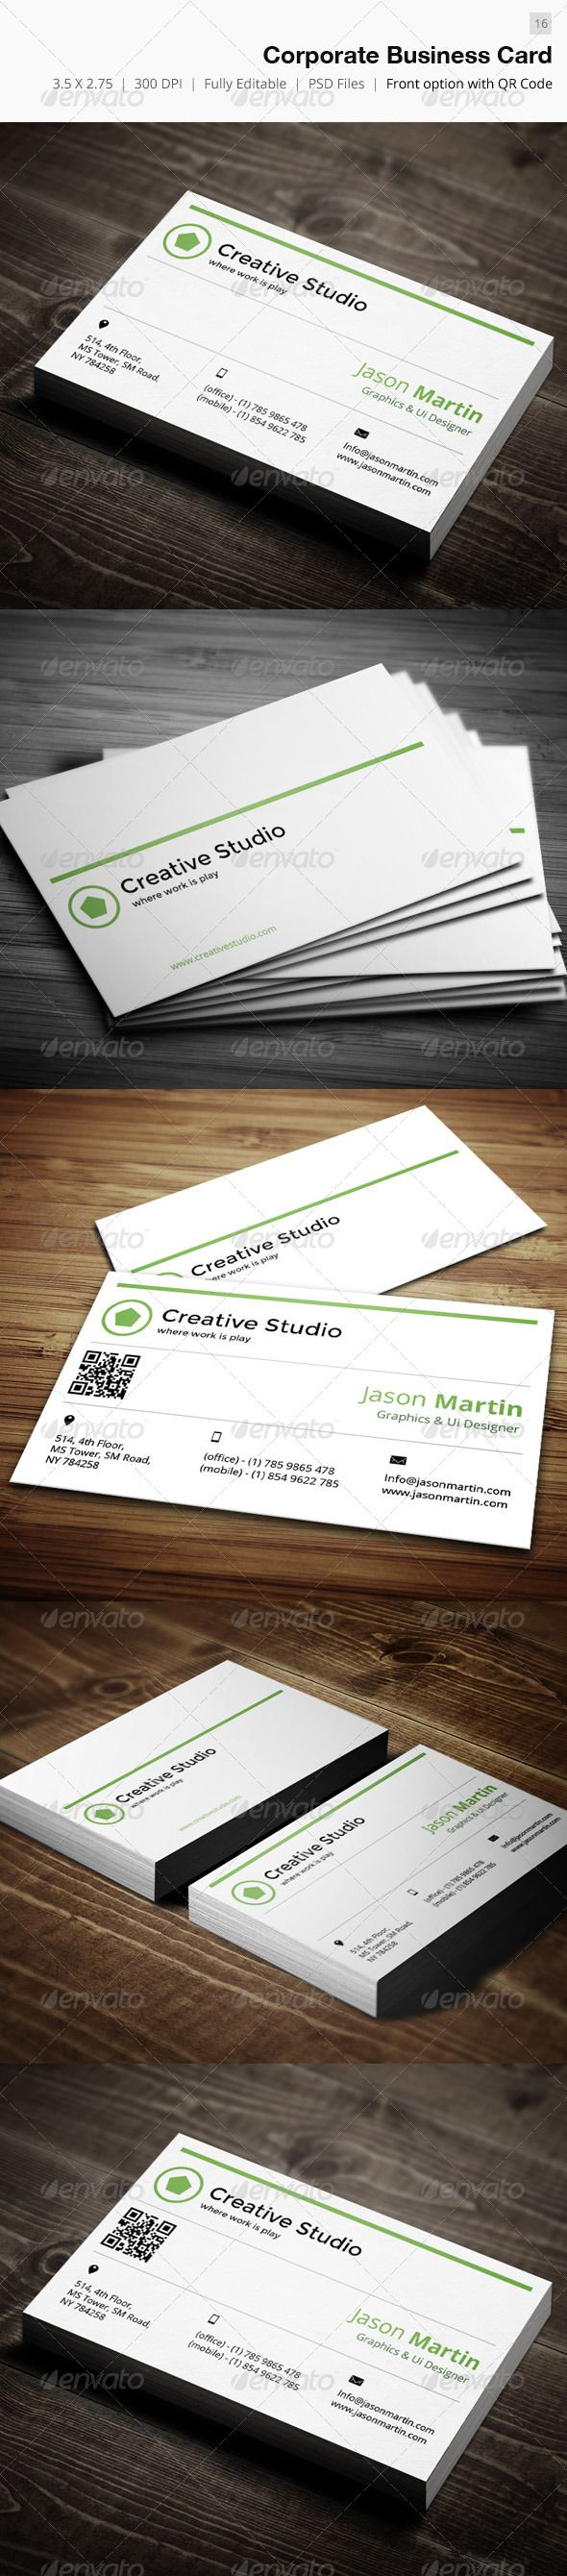 85 best print templates images on pinterest print templates corporate business card 16 reheart Image collections